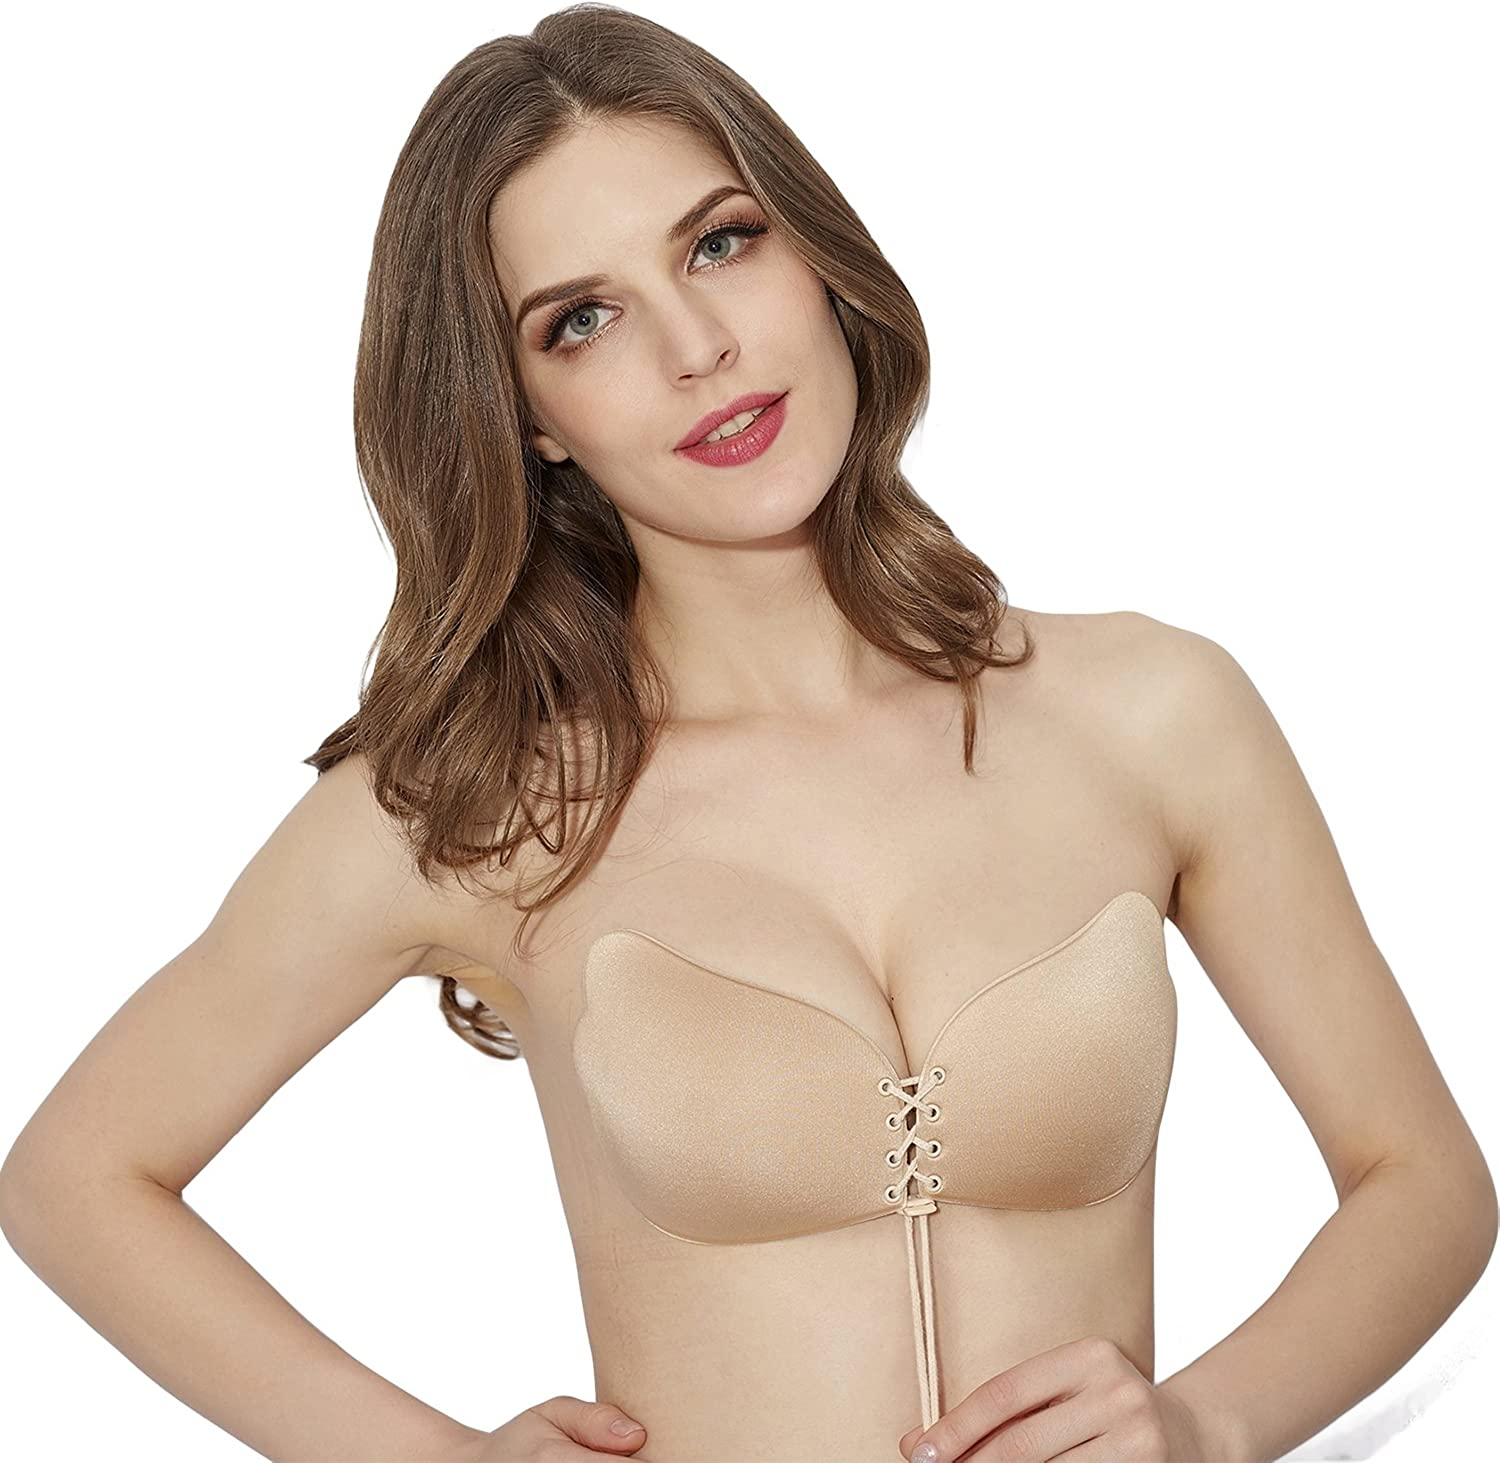 BUOCEANS Adhesive Bra Reusable Backless Strapless Invisible Push-up Bra with Drawstring